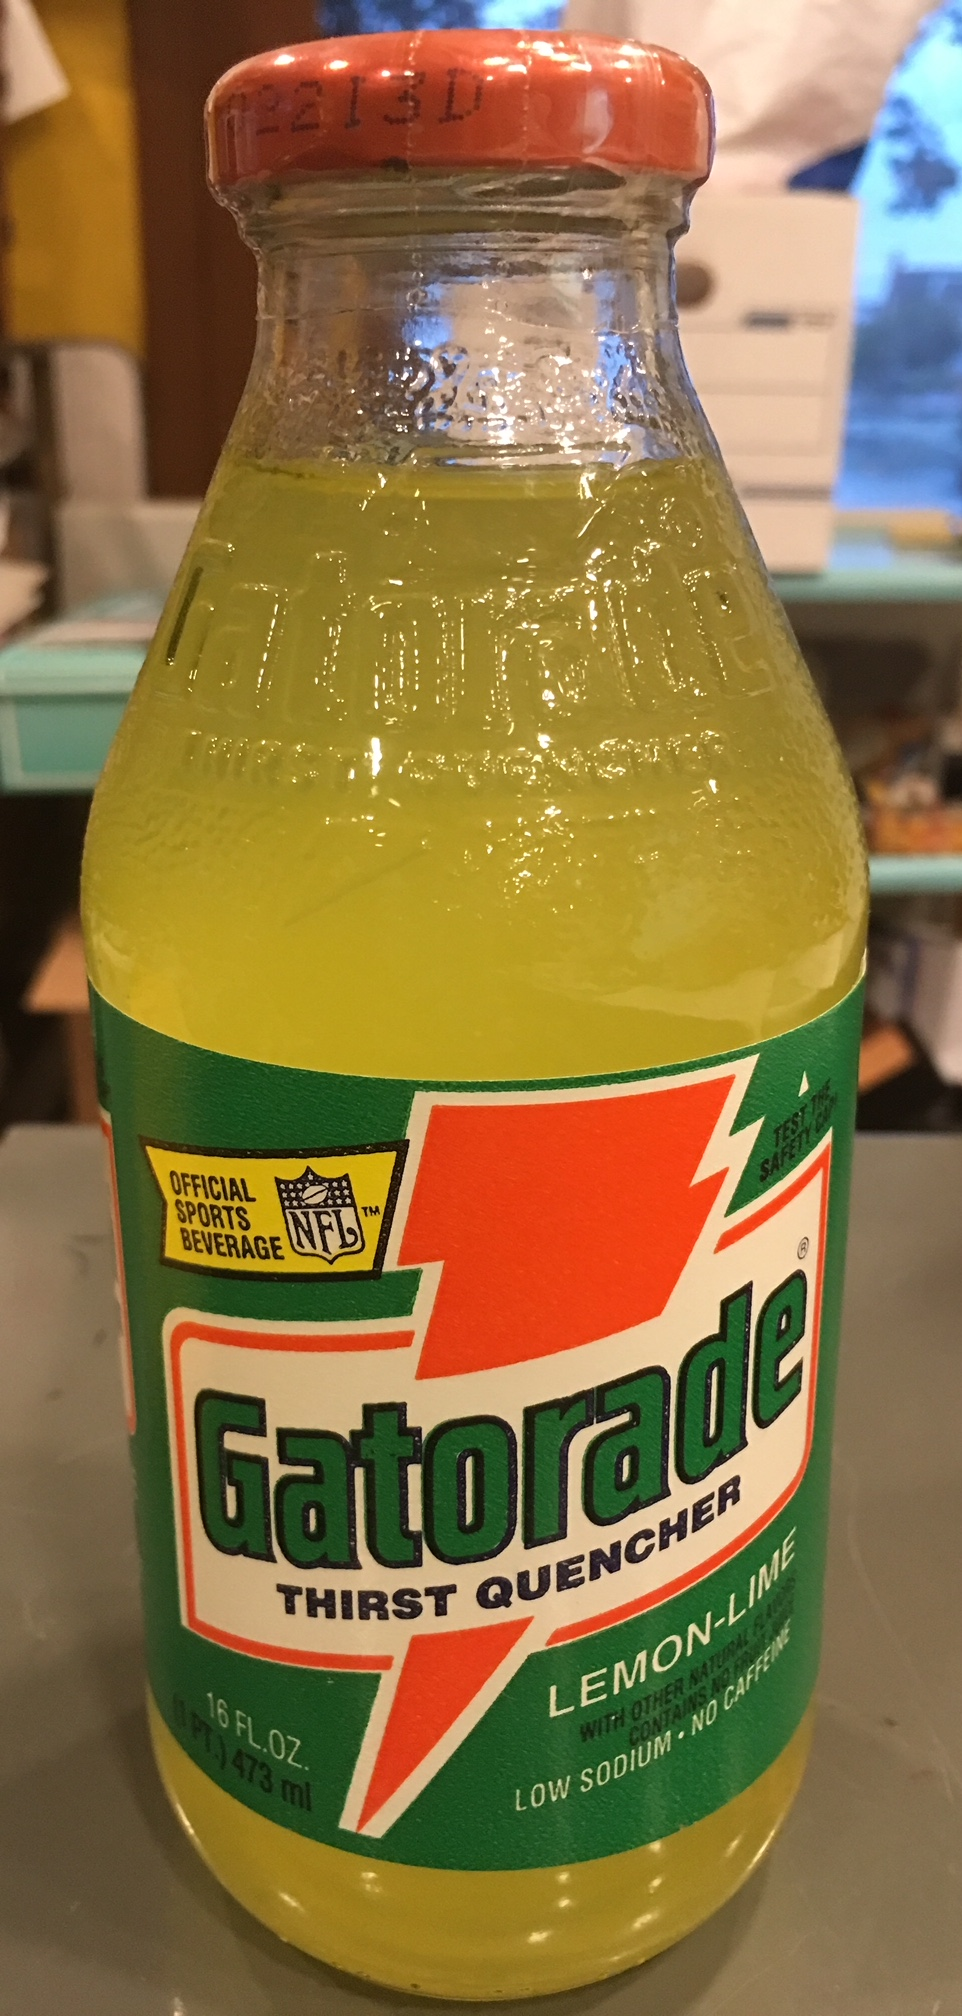 450d519f358 Food Advertising : Gatorade THIRST QUENCHER Lemon-Lime Vintage 1993 Glass  Bottle Official Sports Beverage of the NFL 16 FL Oz